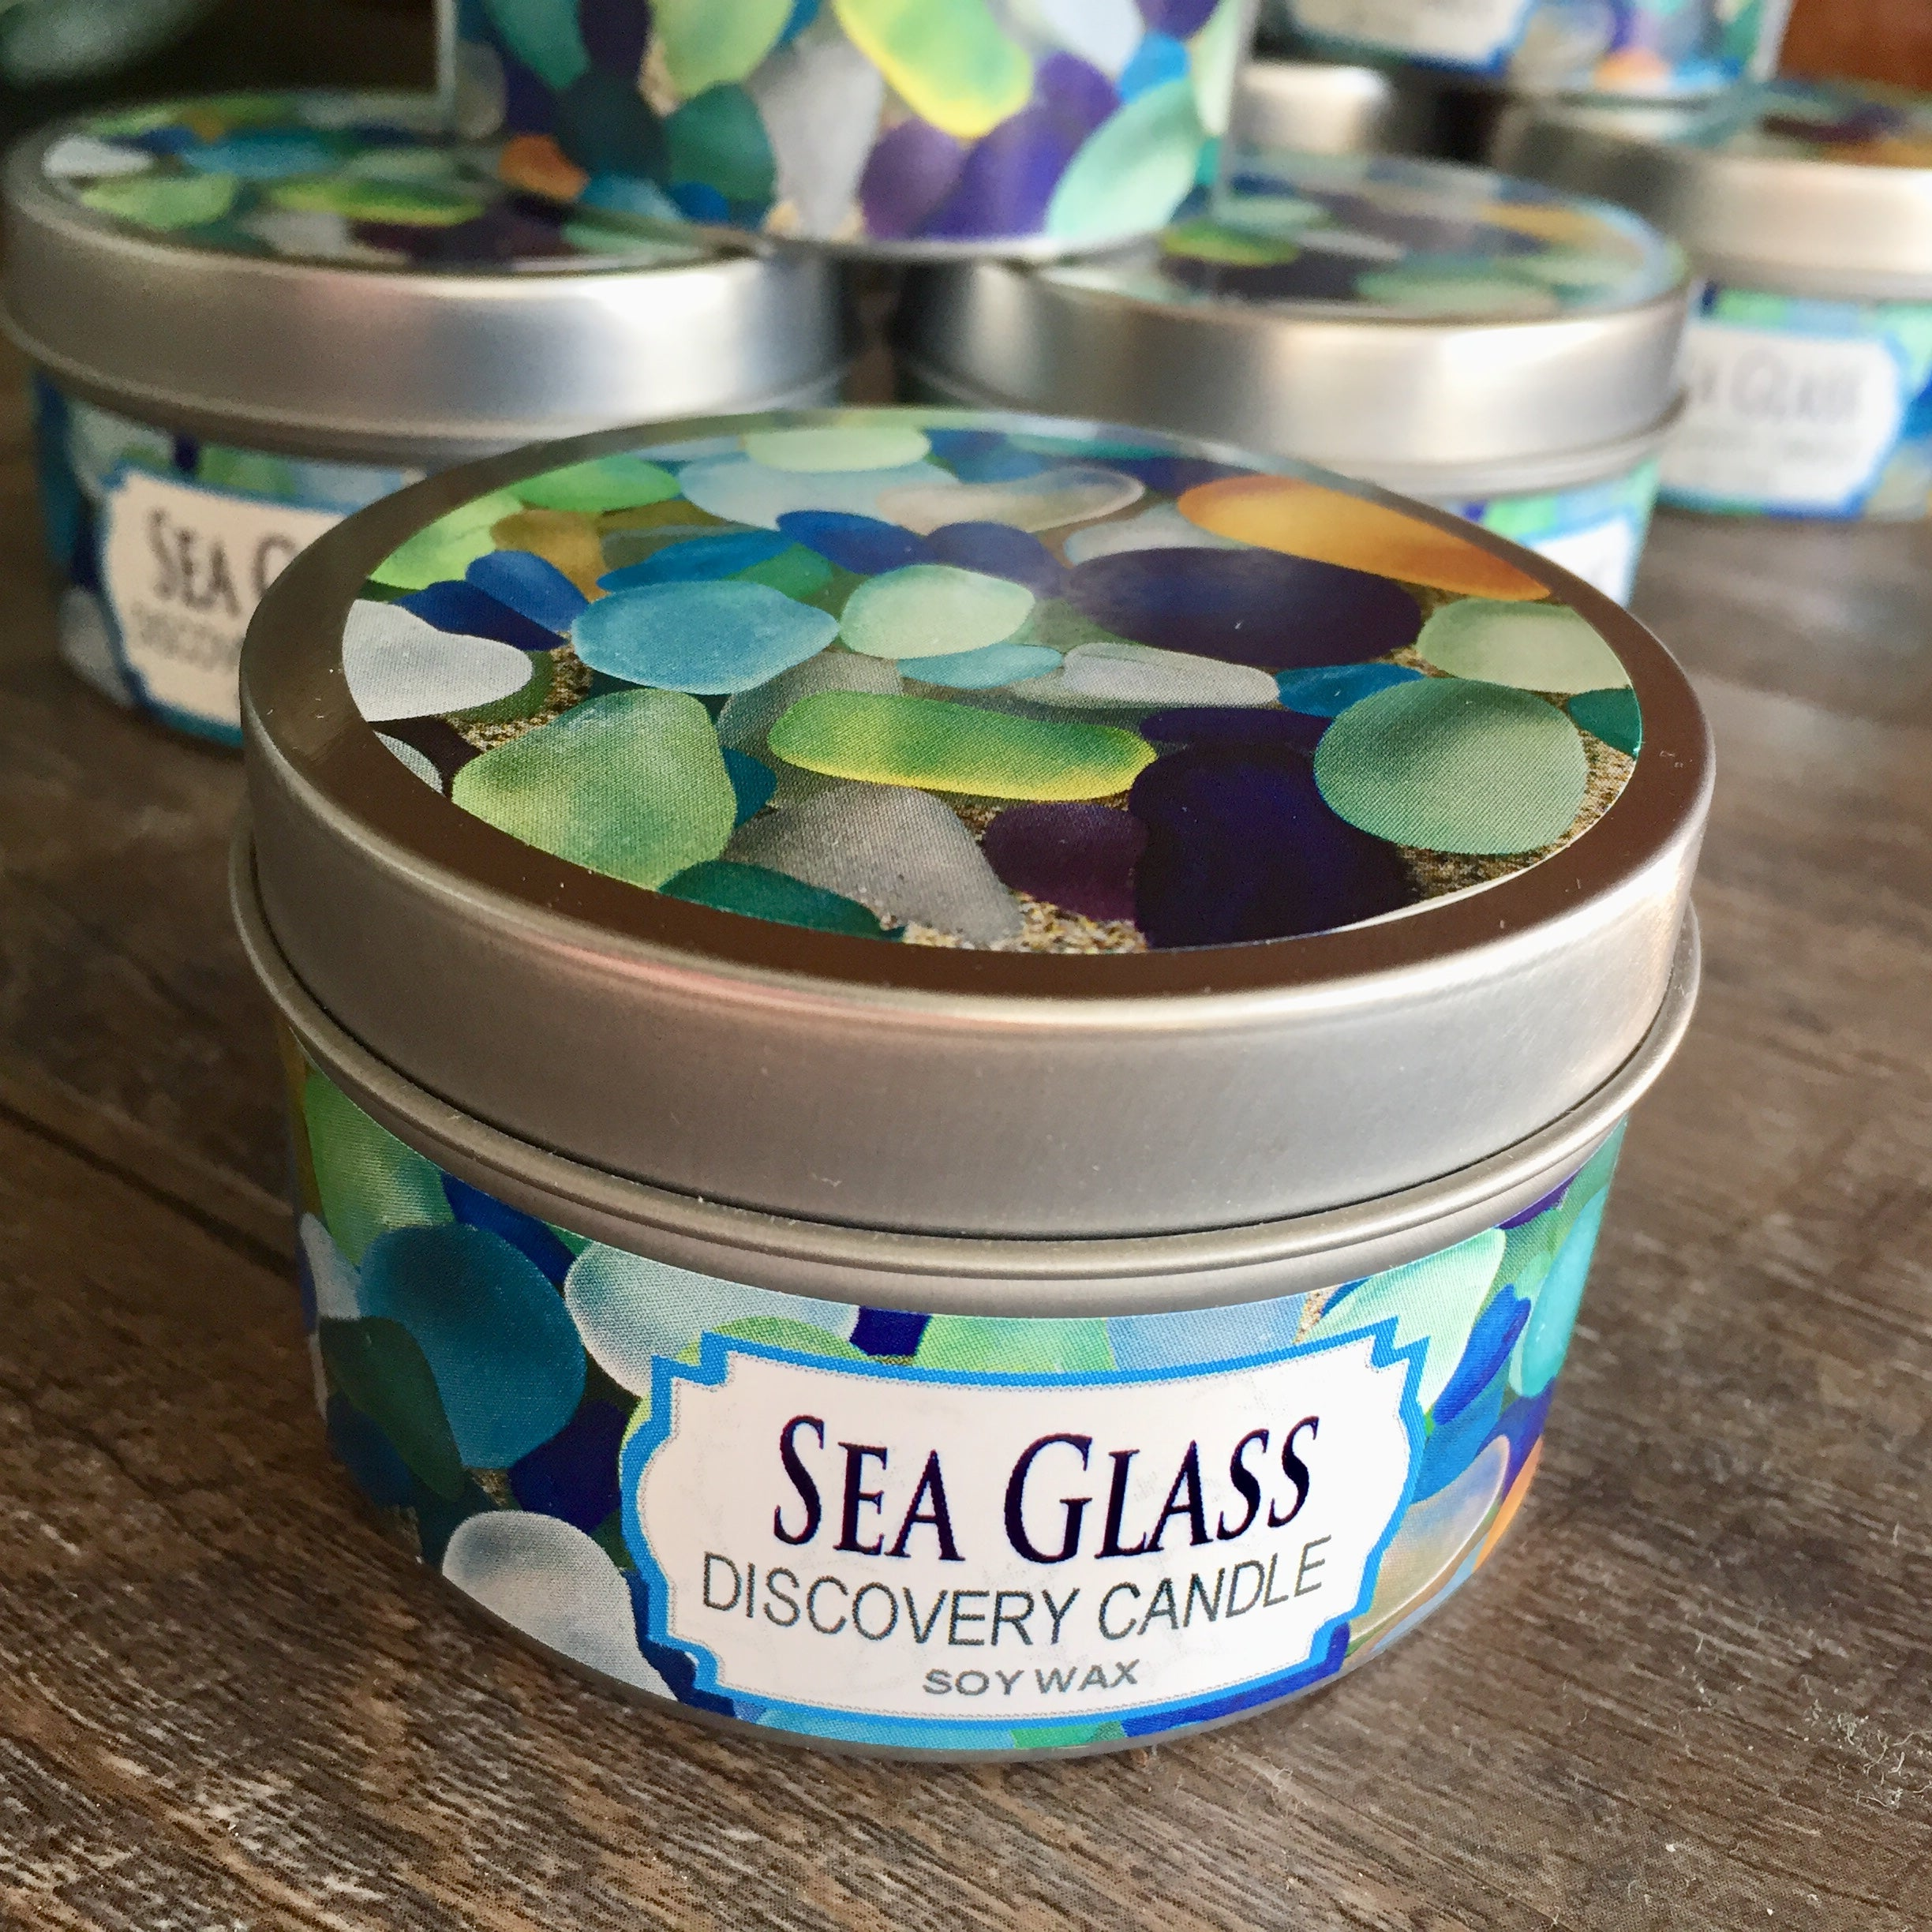 Sea Glass Discovery Candle Tin